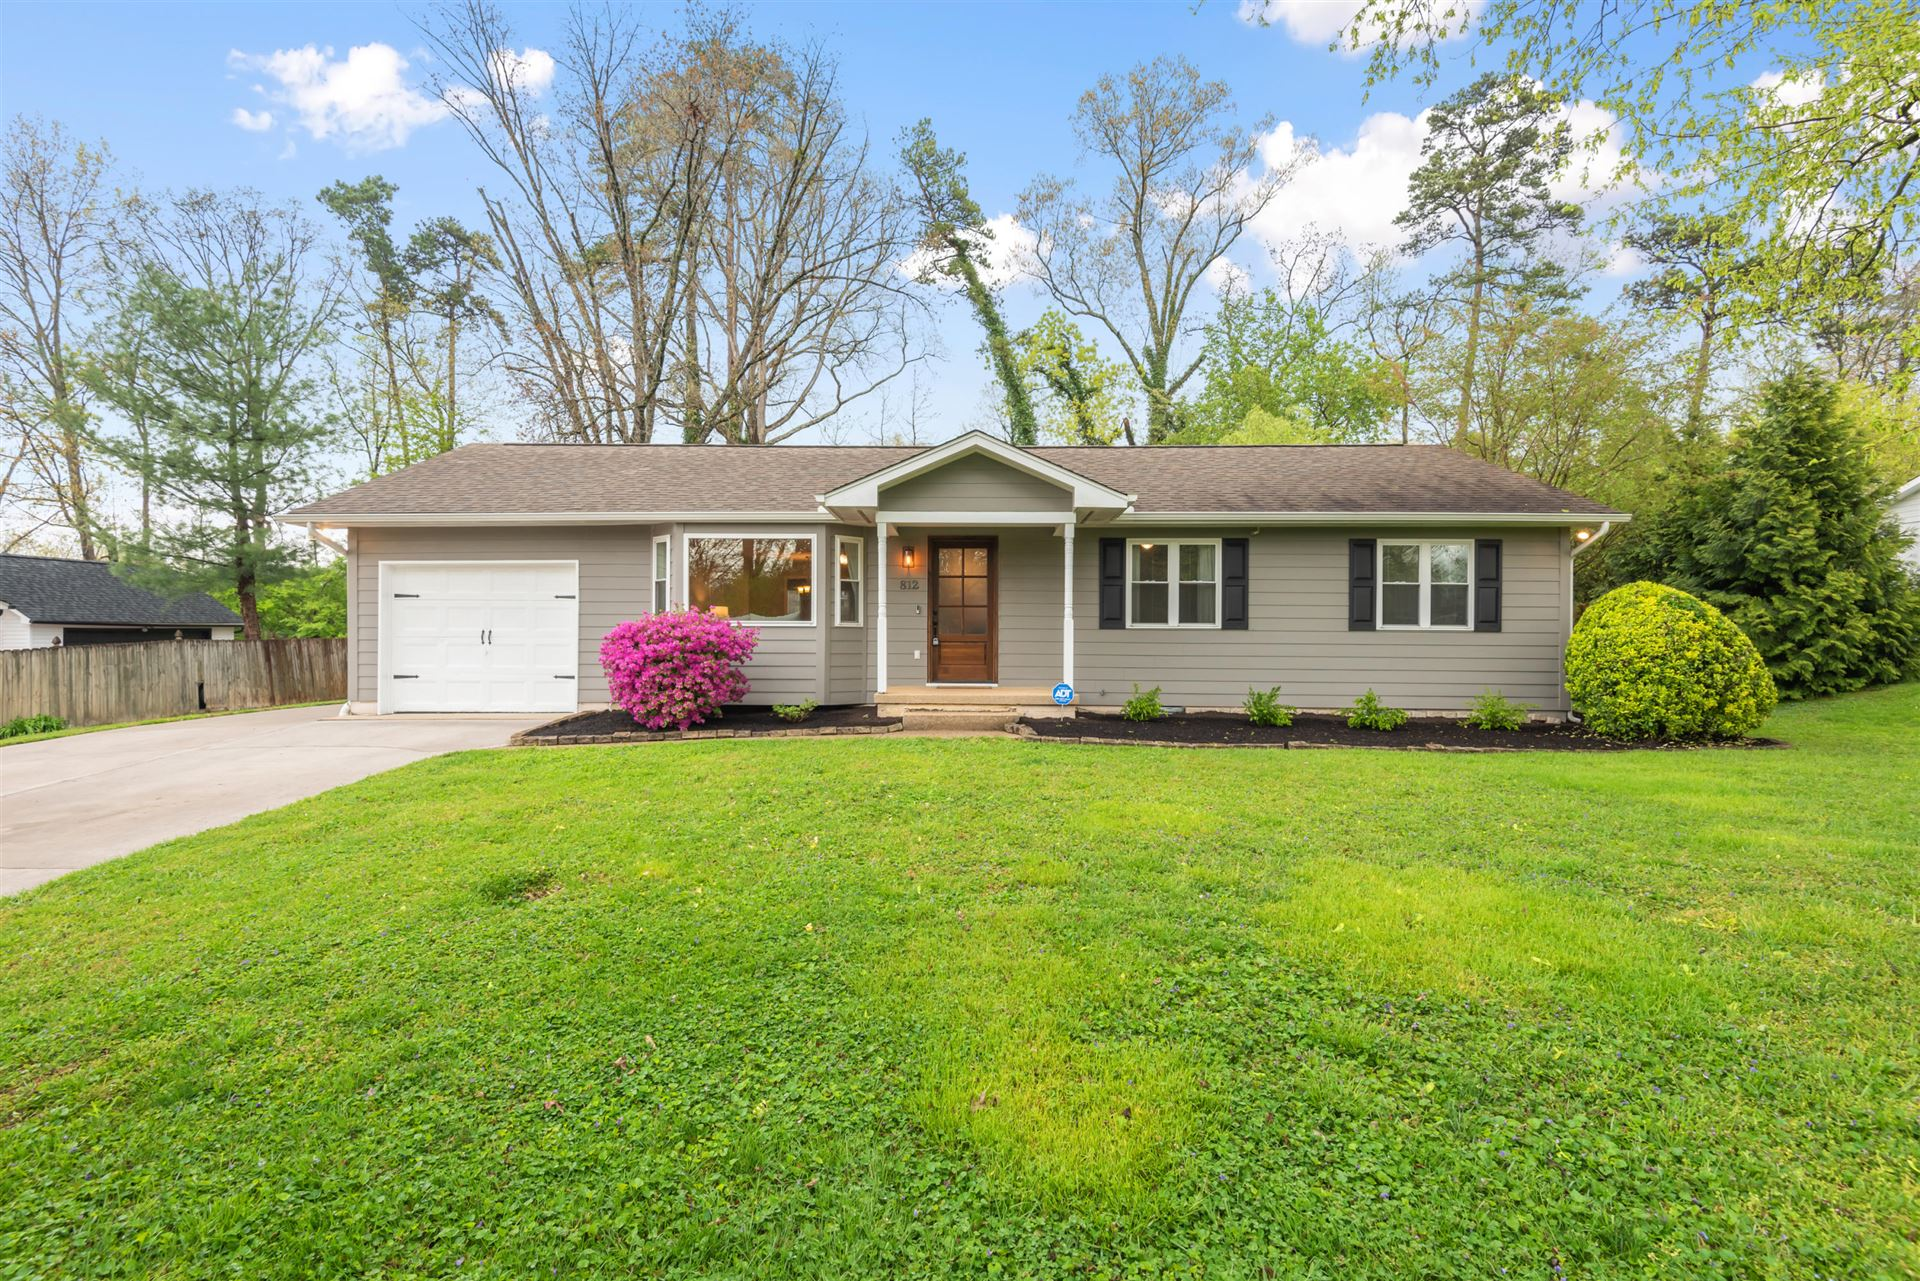 Photo of 812 Montacres Lane, Knoxville, TN 37919 (MLS # 1148658)